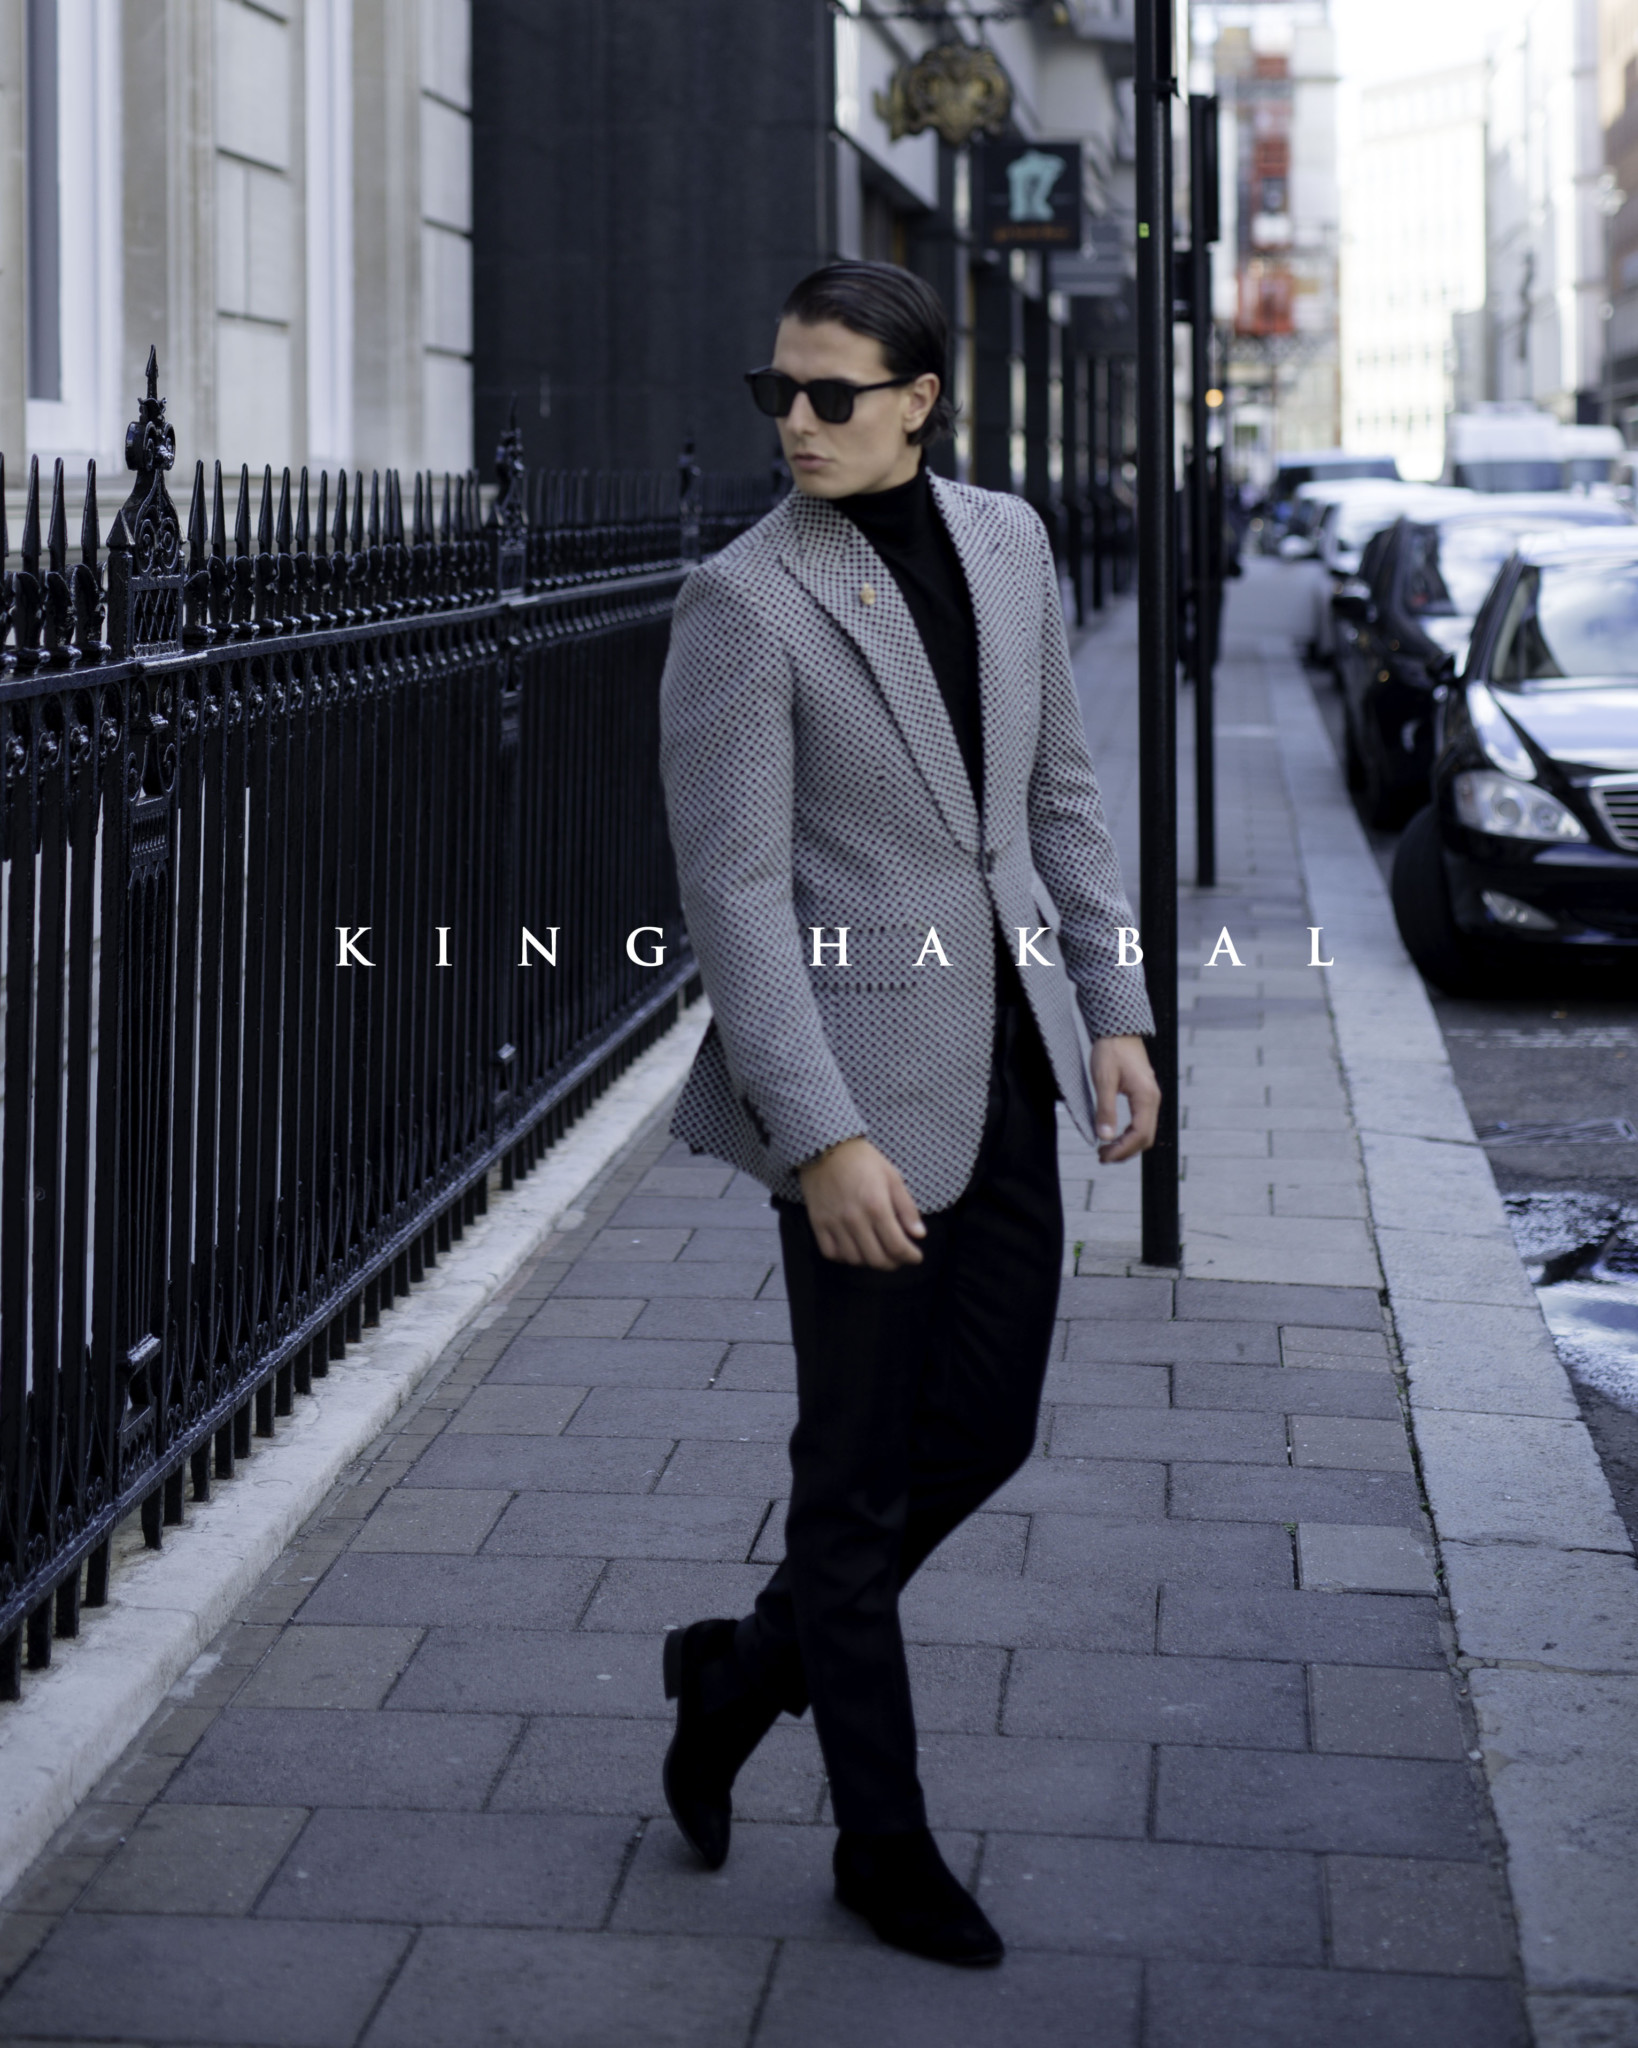 For Dapper Men King Hakbal Presents the Black Turtleneck Inspired Collection (5)